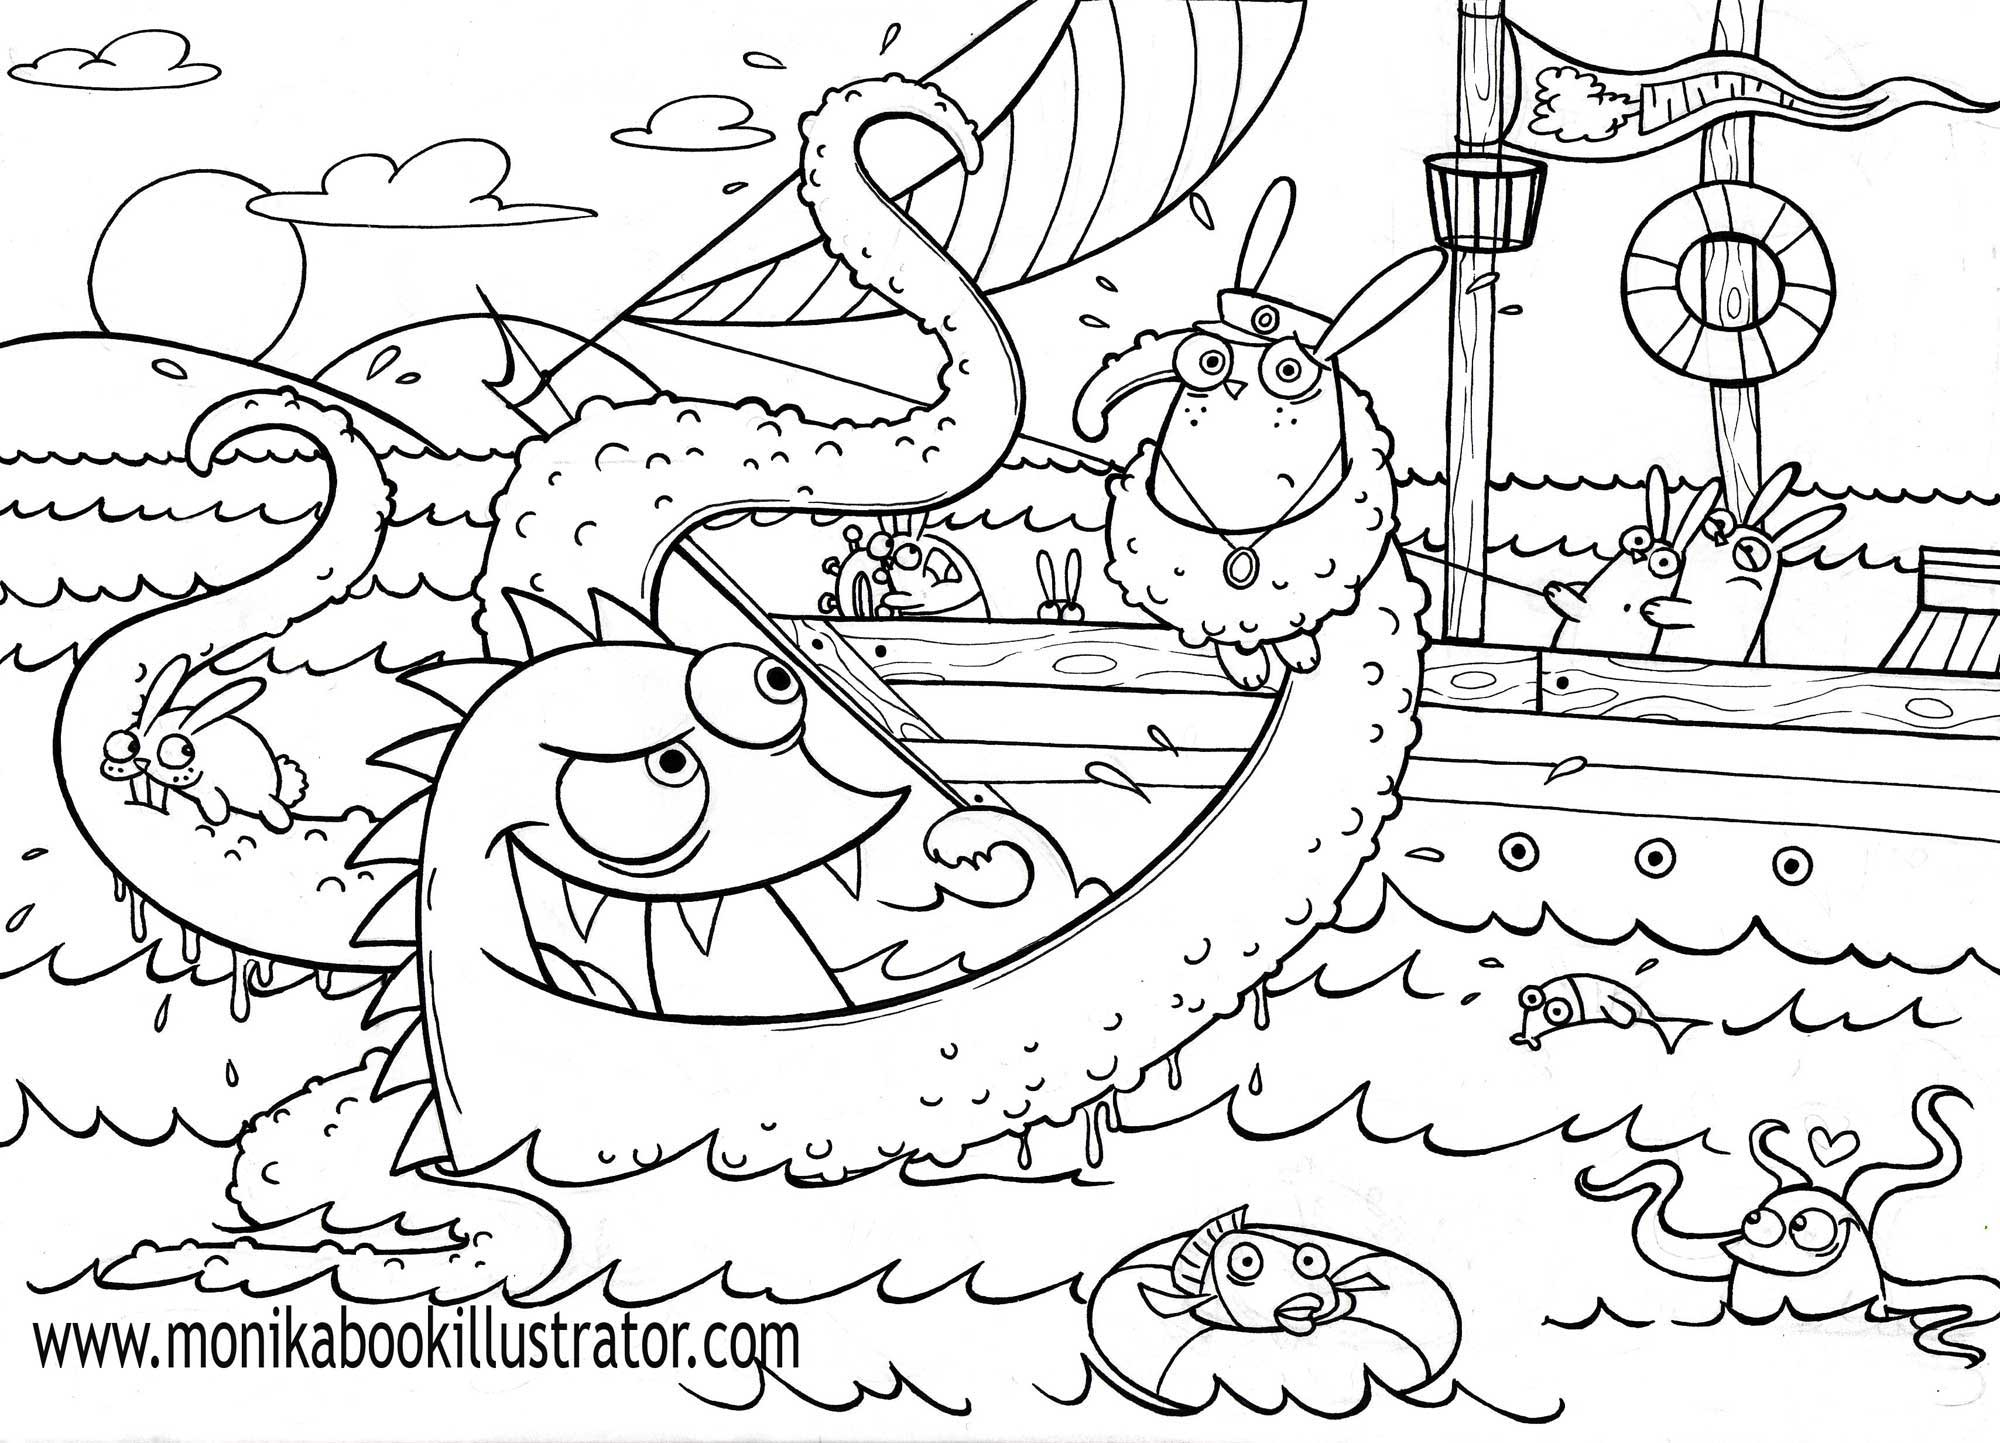 Sea coloring pages to download